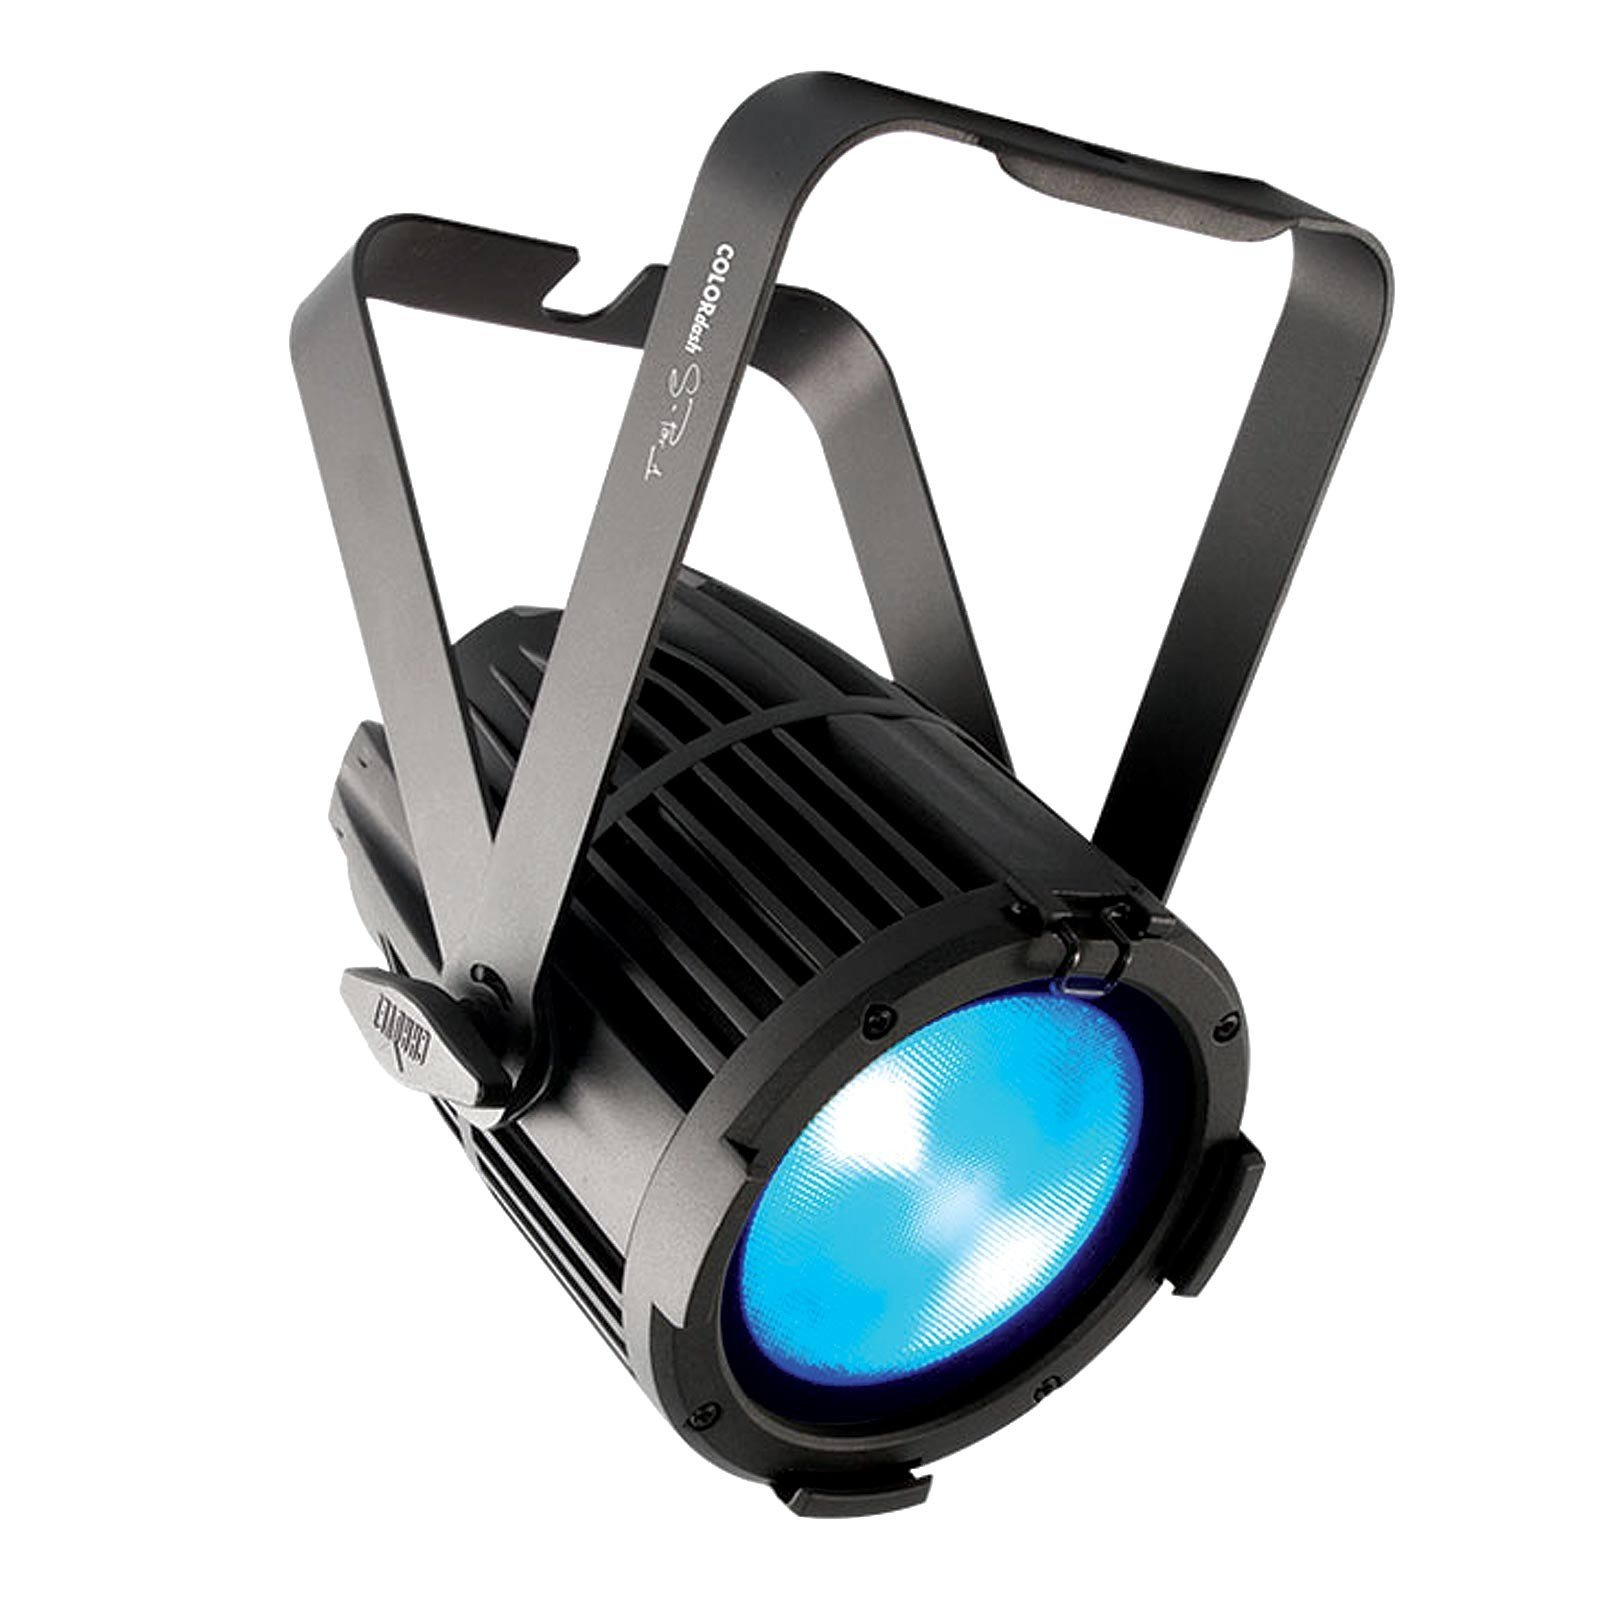 Chauvet Professional COLORdash S-Par 1